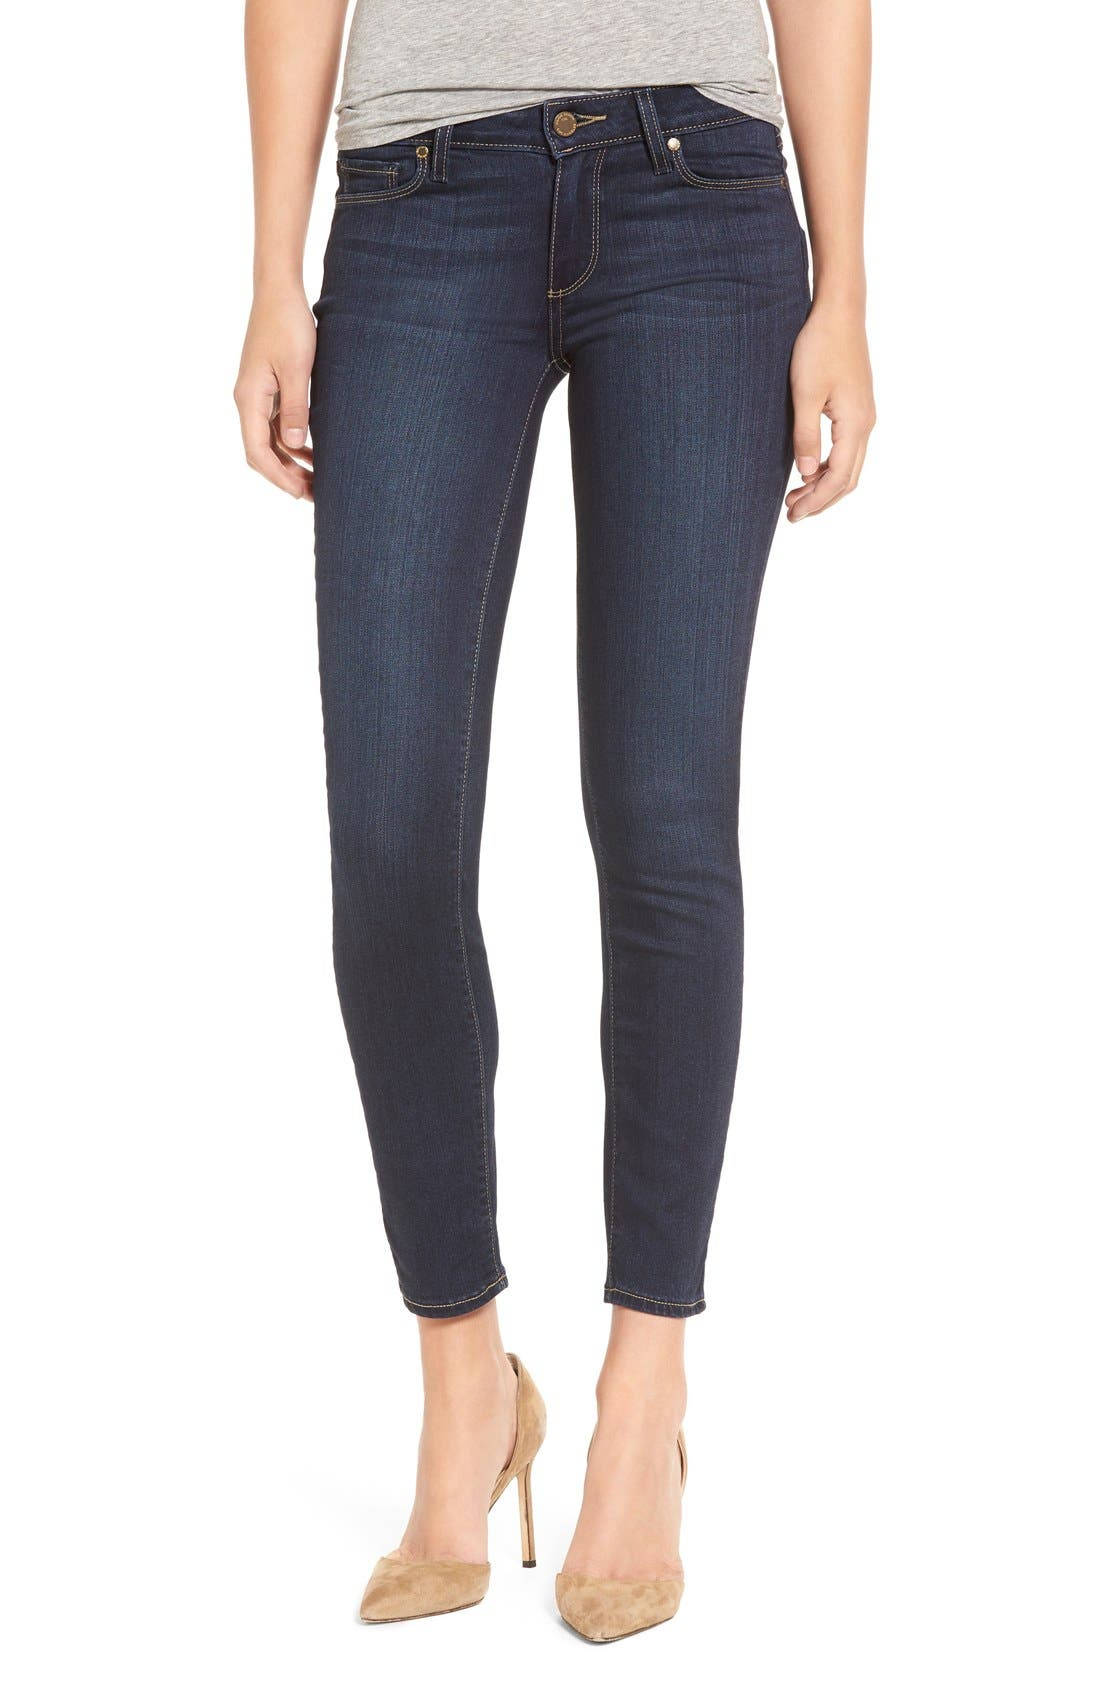 PAIGE Transcend - Verdugo Ankle Ultra Skinny Jeans (Hartmann) (Nordstrom Exclusive)